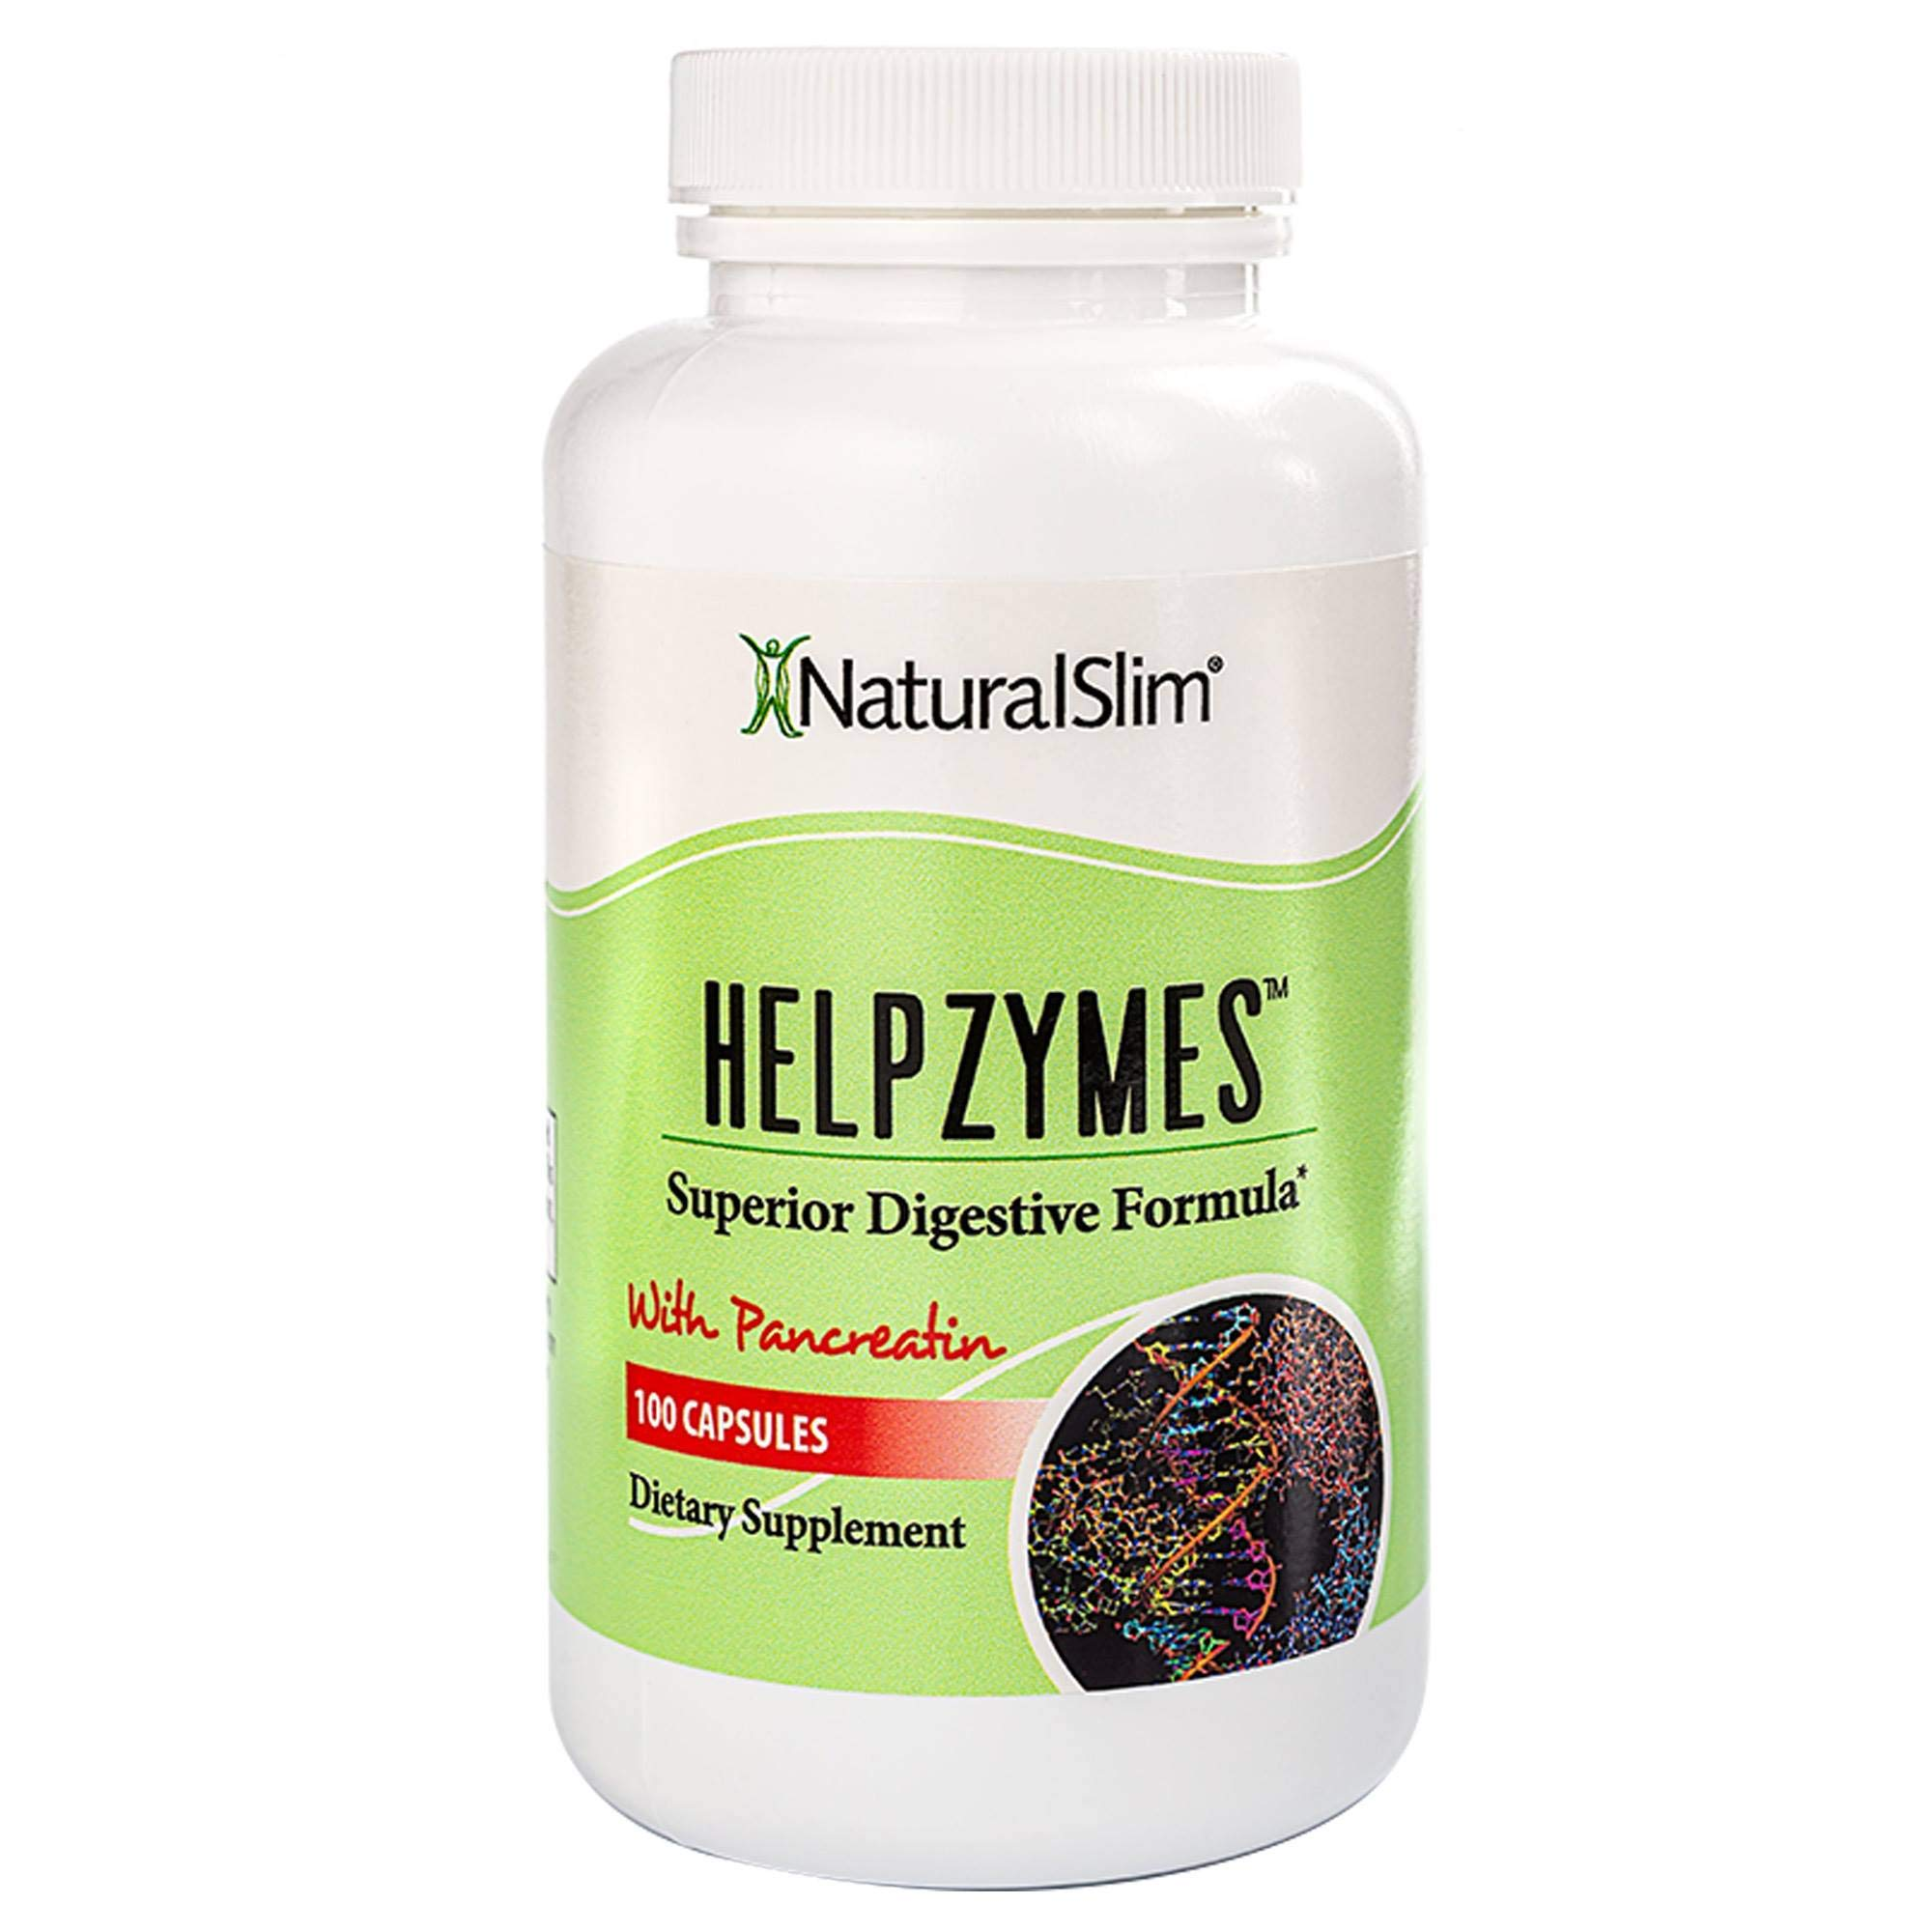 NaturalSlim Superior Digestive Enzymes with HLC Acid and Pancreatin Formulated by Award Winning Weight Loss and Metabolism Specialist- Powerful and Effective Formula for Ultra Digestion and Absorption by NaturalSlim